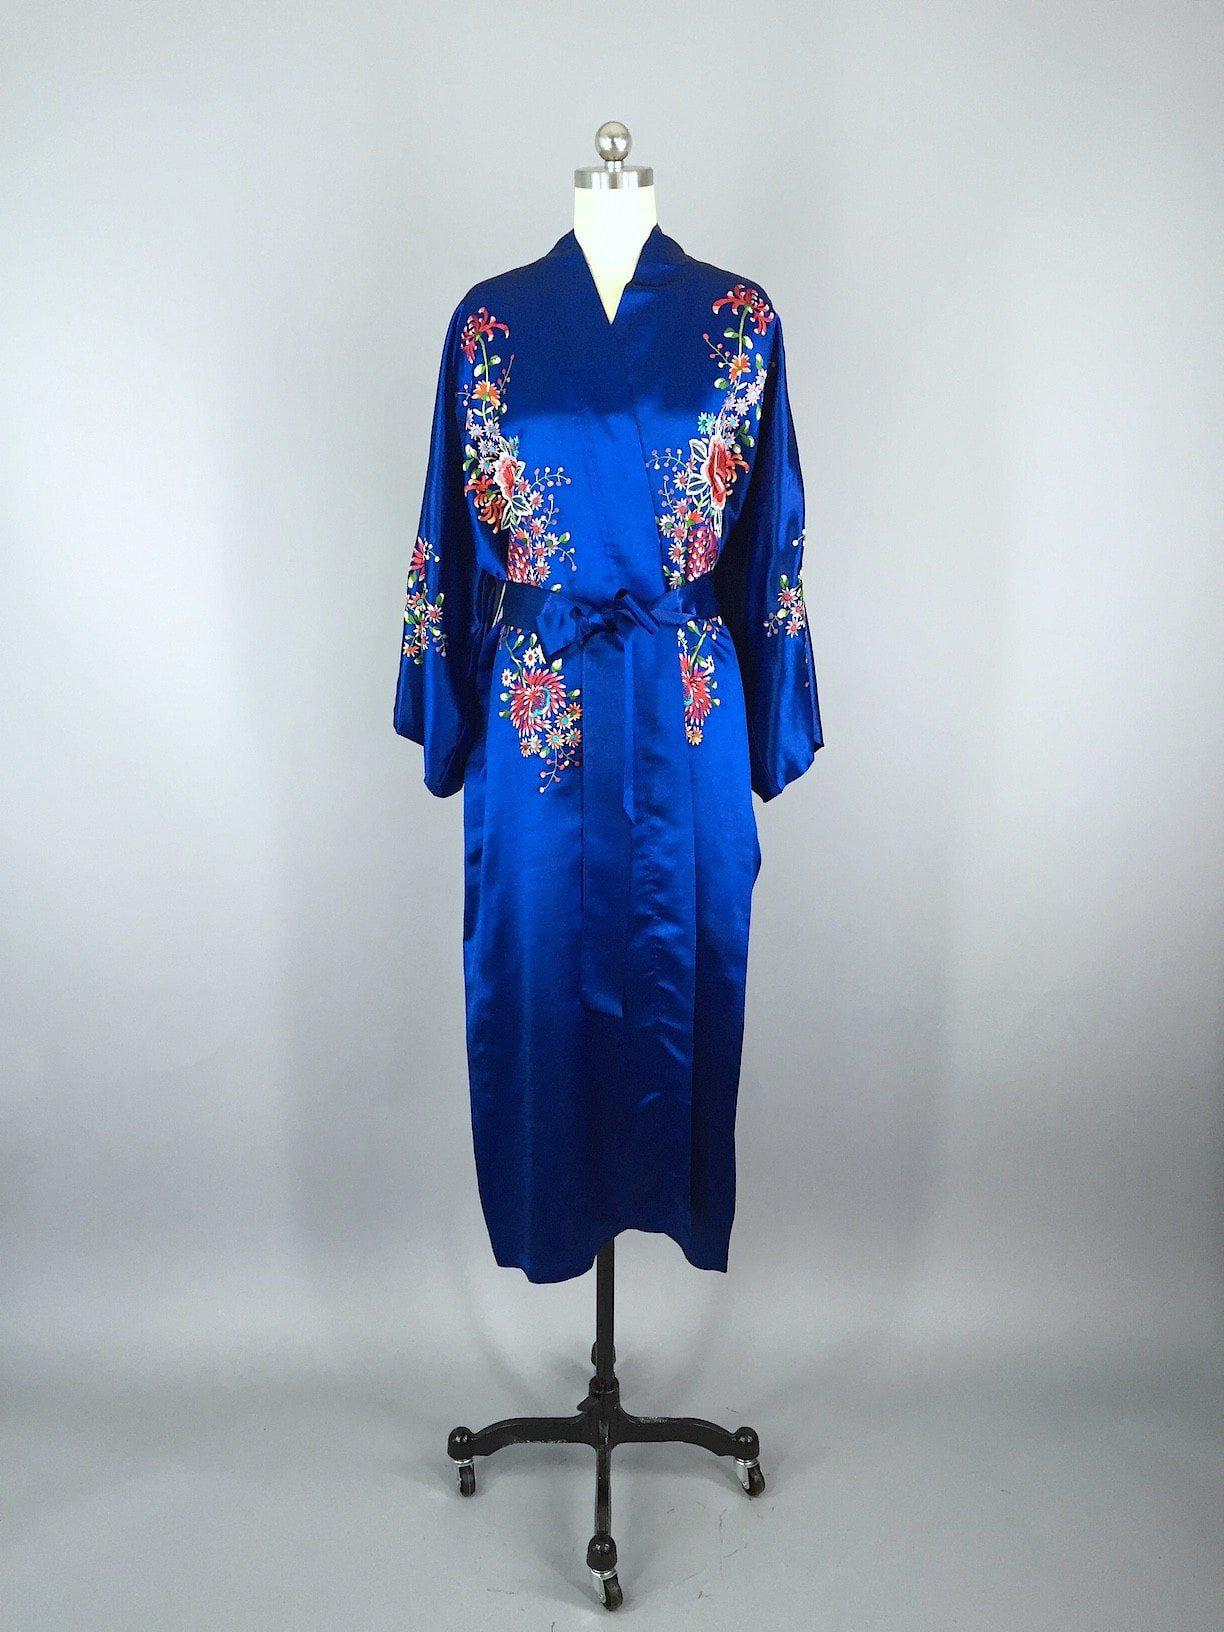 Vintage 1960s Royal Blue Silk Robe with Floral Embroidery Kimono  ThisBlueBird a4fcb7a62